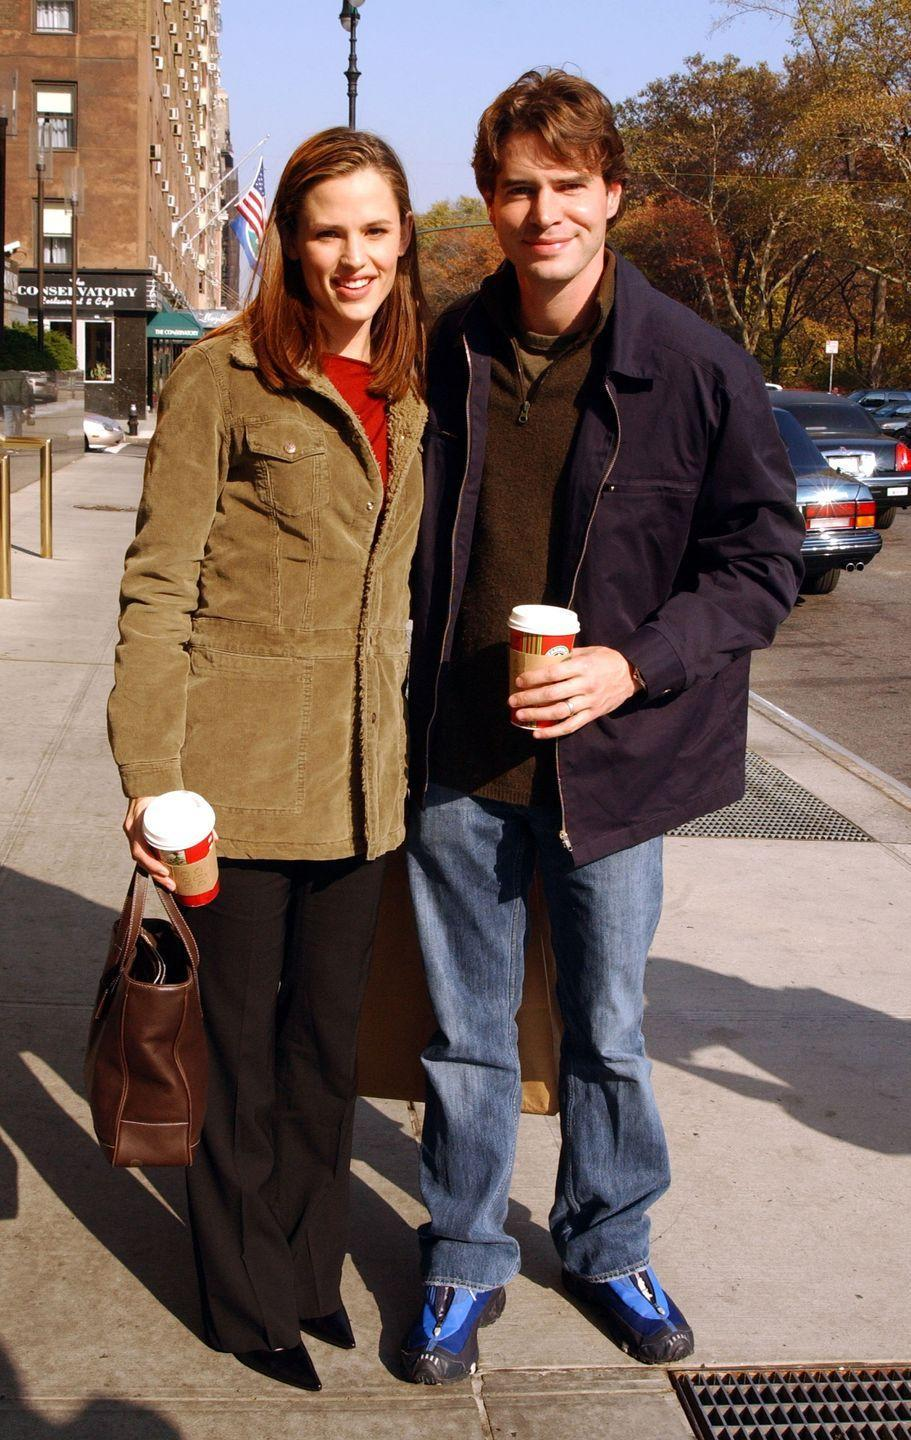 <p>There's nothing quite like an afternoon stroll with Starbucks to embody the autumn aesthetic. Jennifer Garner, naturally in a beige corduroy, and Scott Foley were clearly <em>falling</em> for one another.</p>